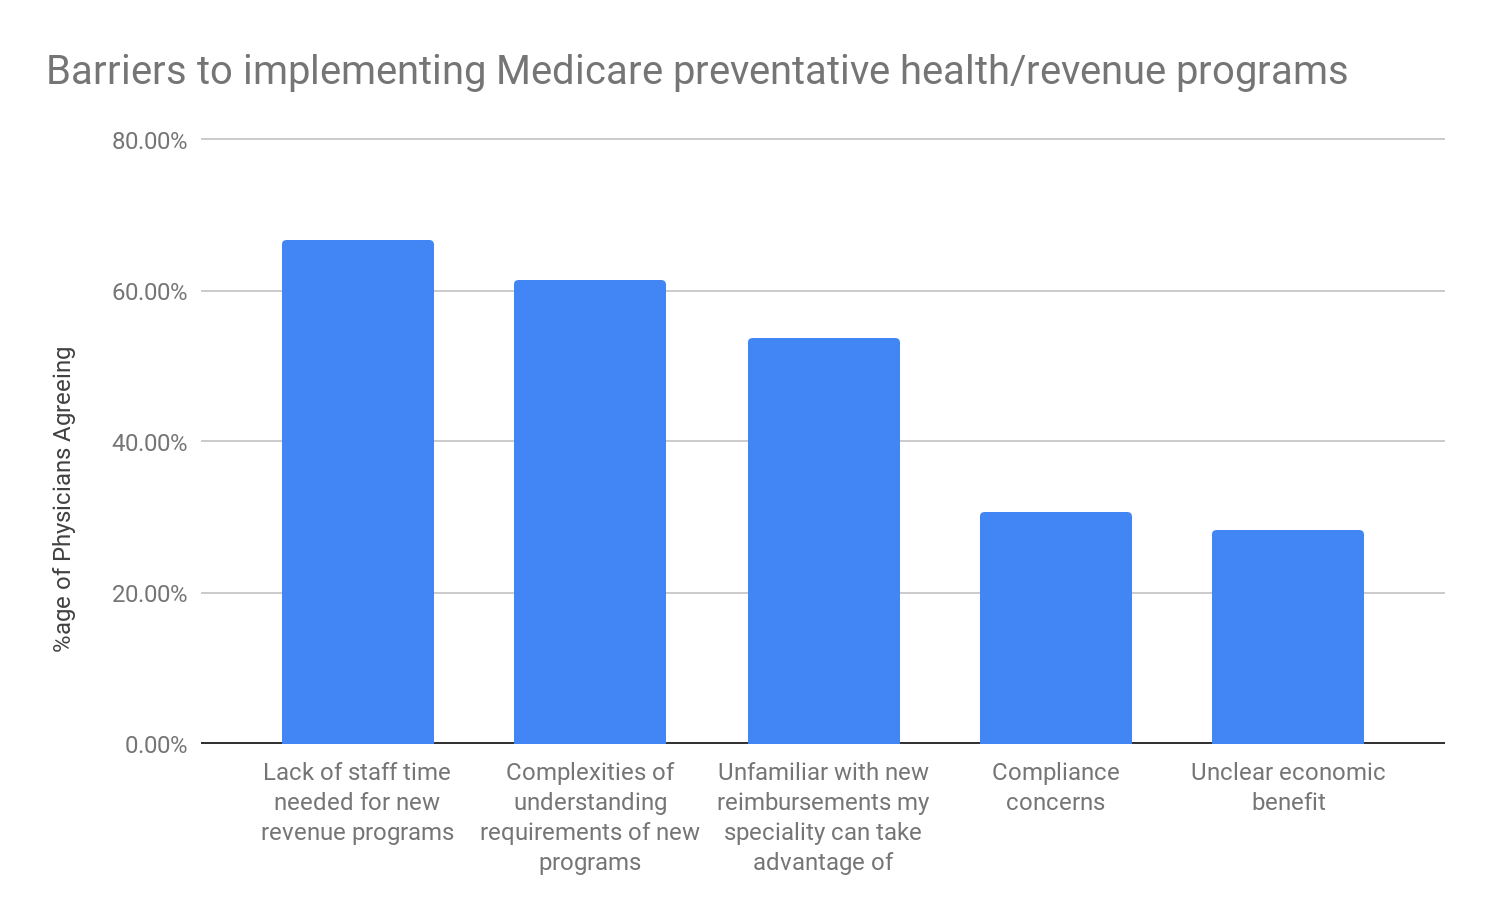 Barriers to implementing Medicare preventative health programs chart